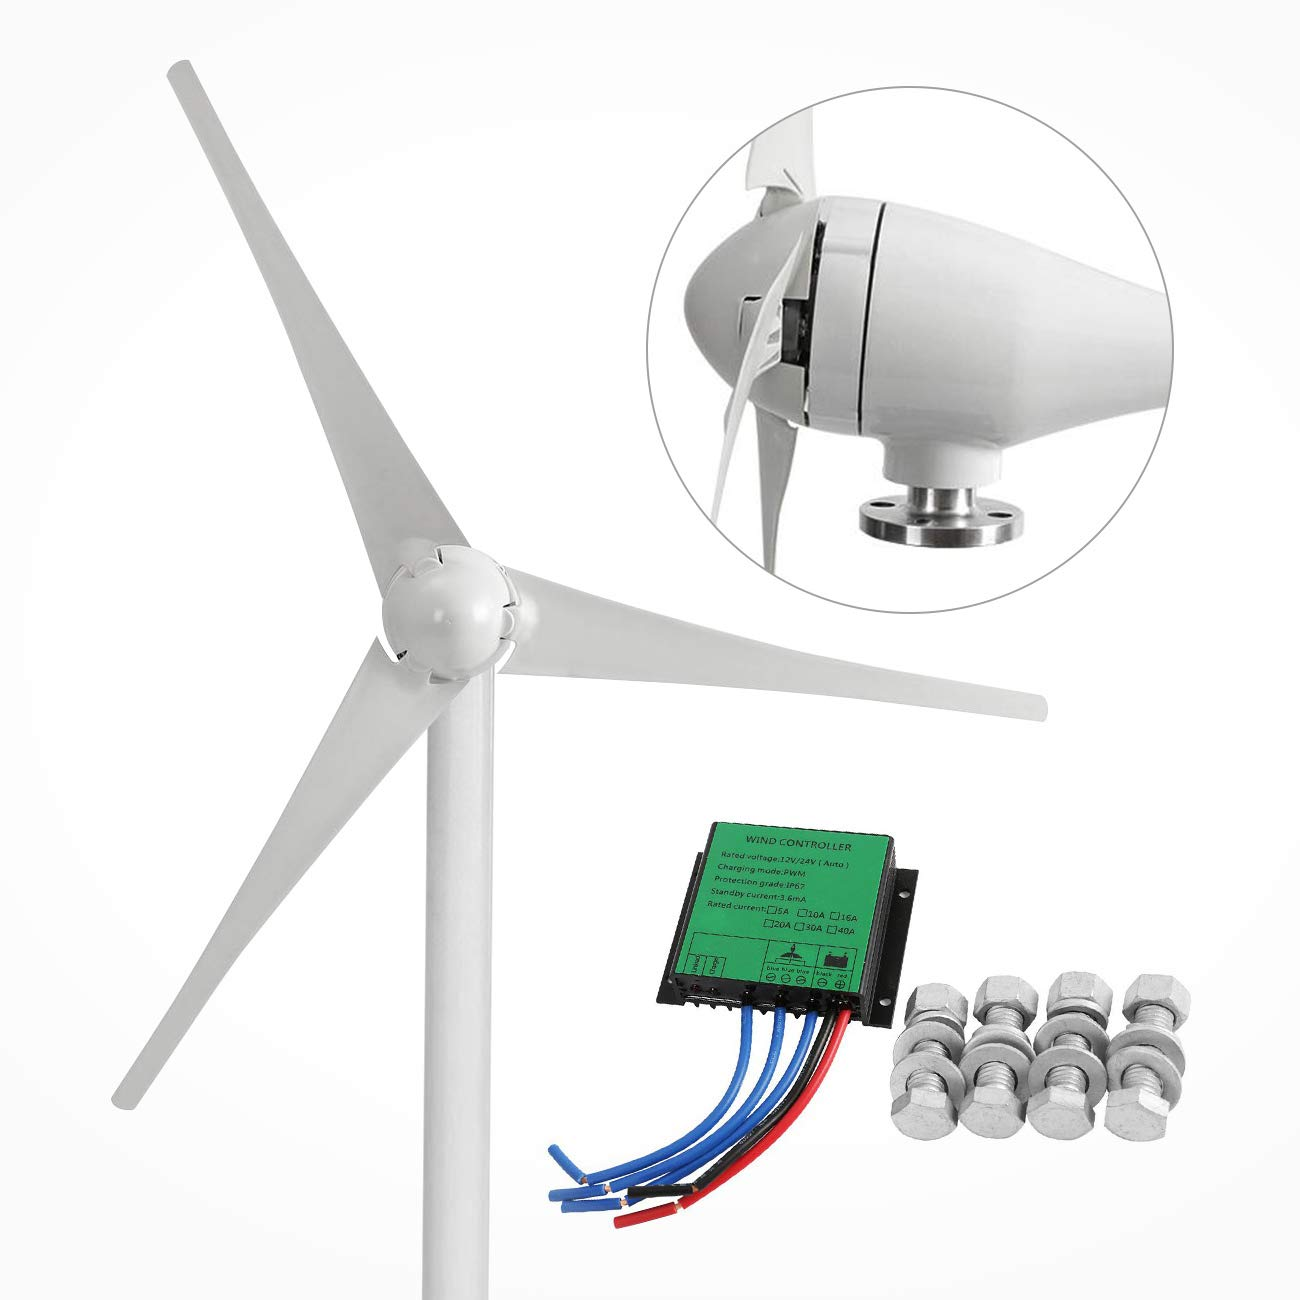 Dyna-Living Wind Turbine Generator 400W DC 12V Businesses 3 Blade with Controller for Marine RV Homes Industrial Energy